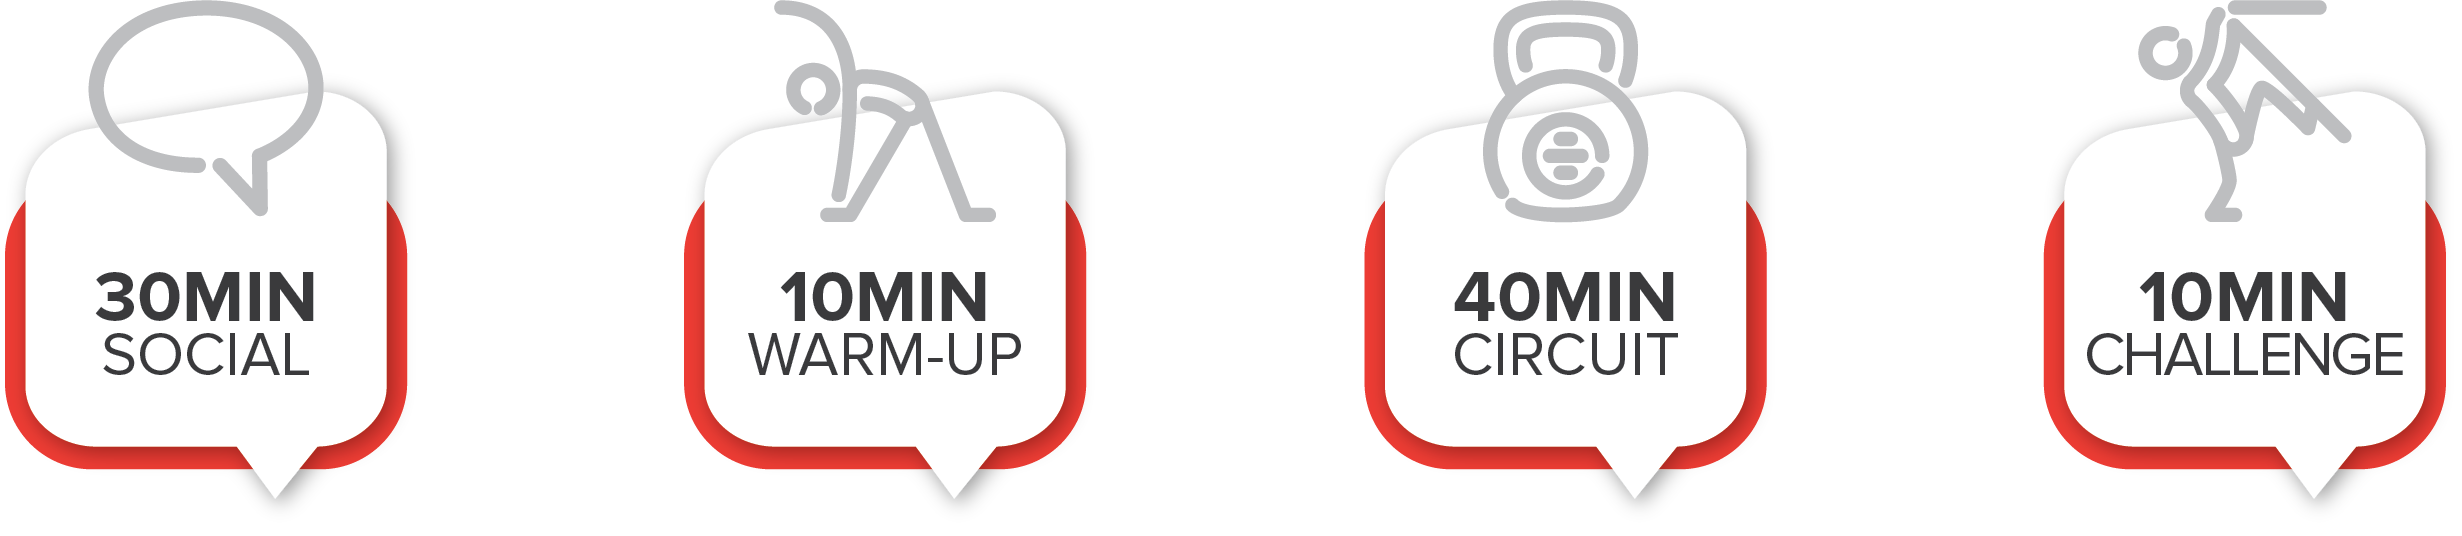 Asset 9ALL Icons 2019 RED.png